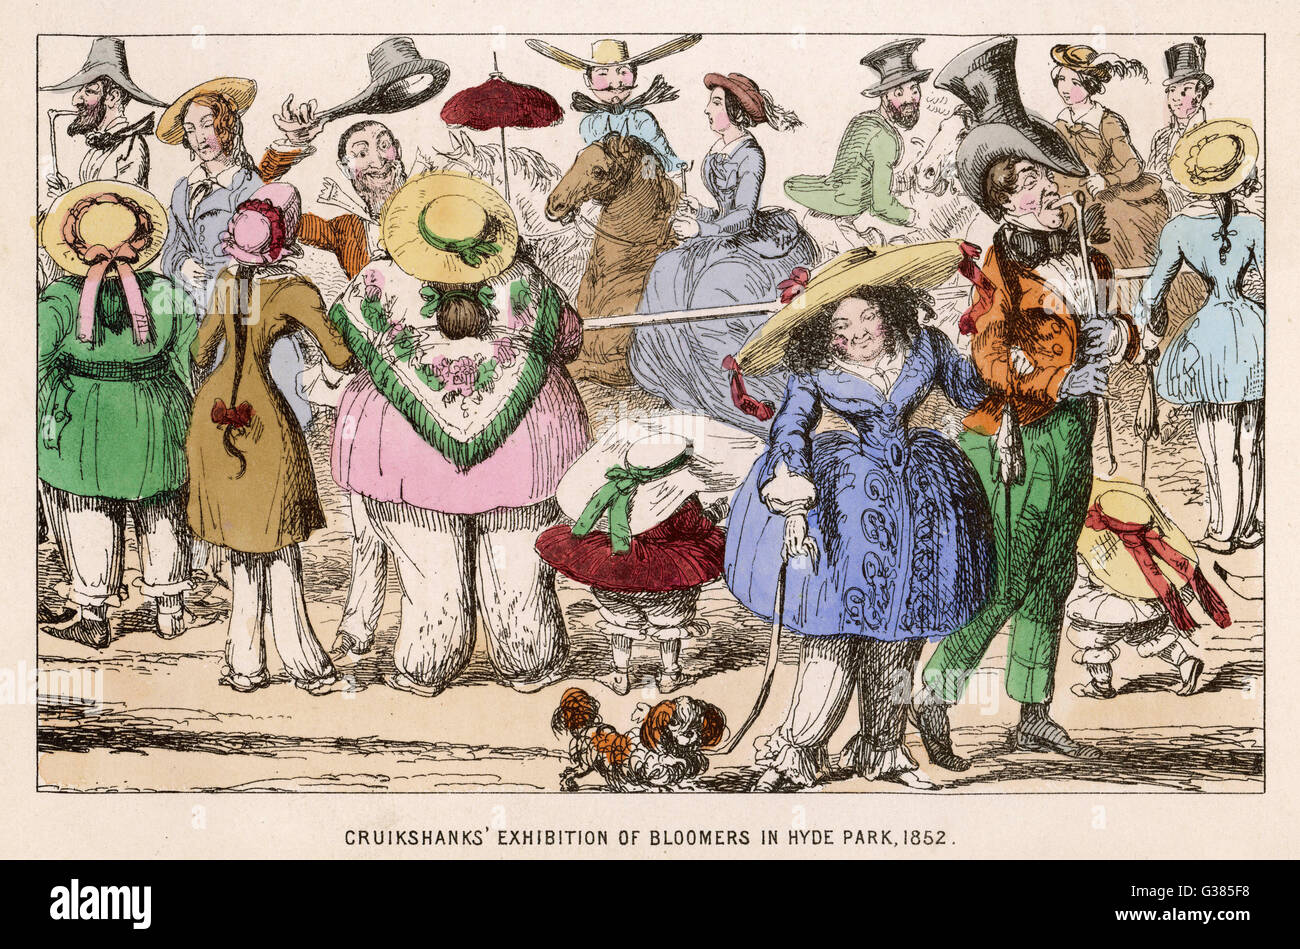 A show of bloomers.         Date: 1852 - Stock Image